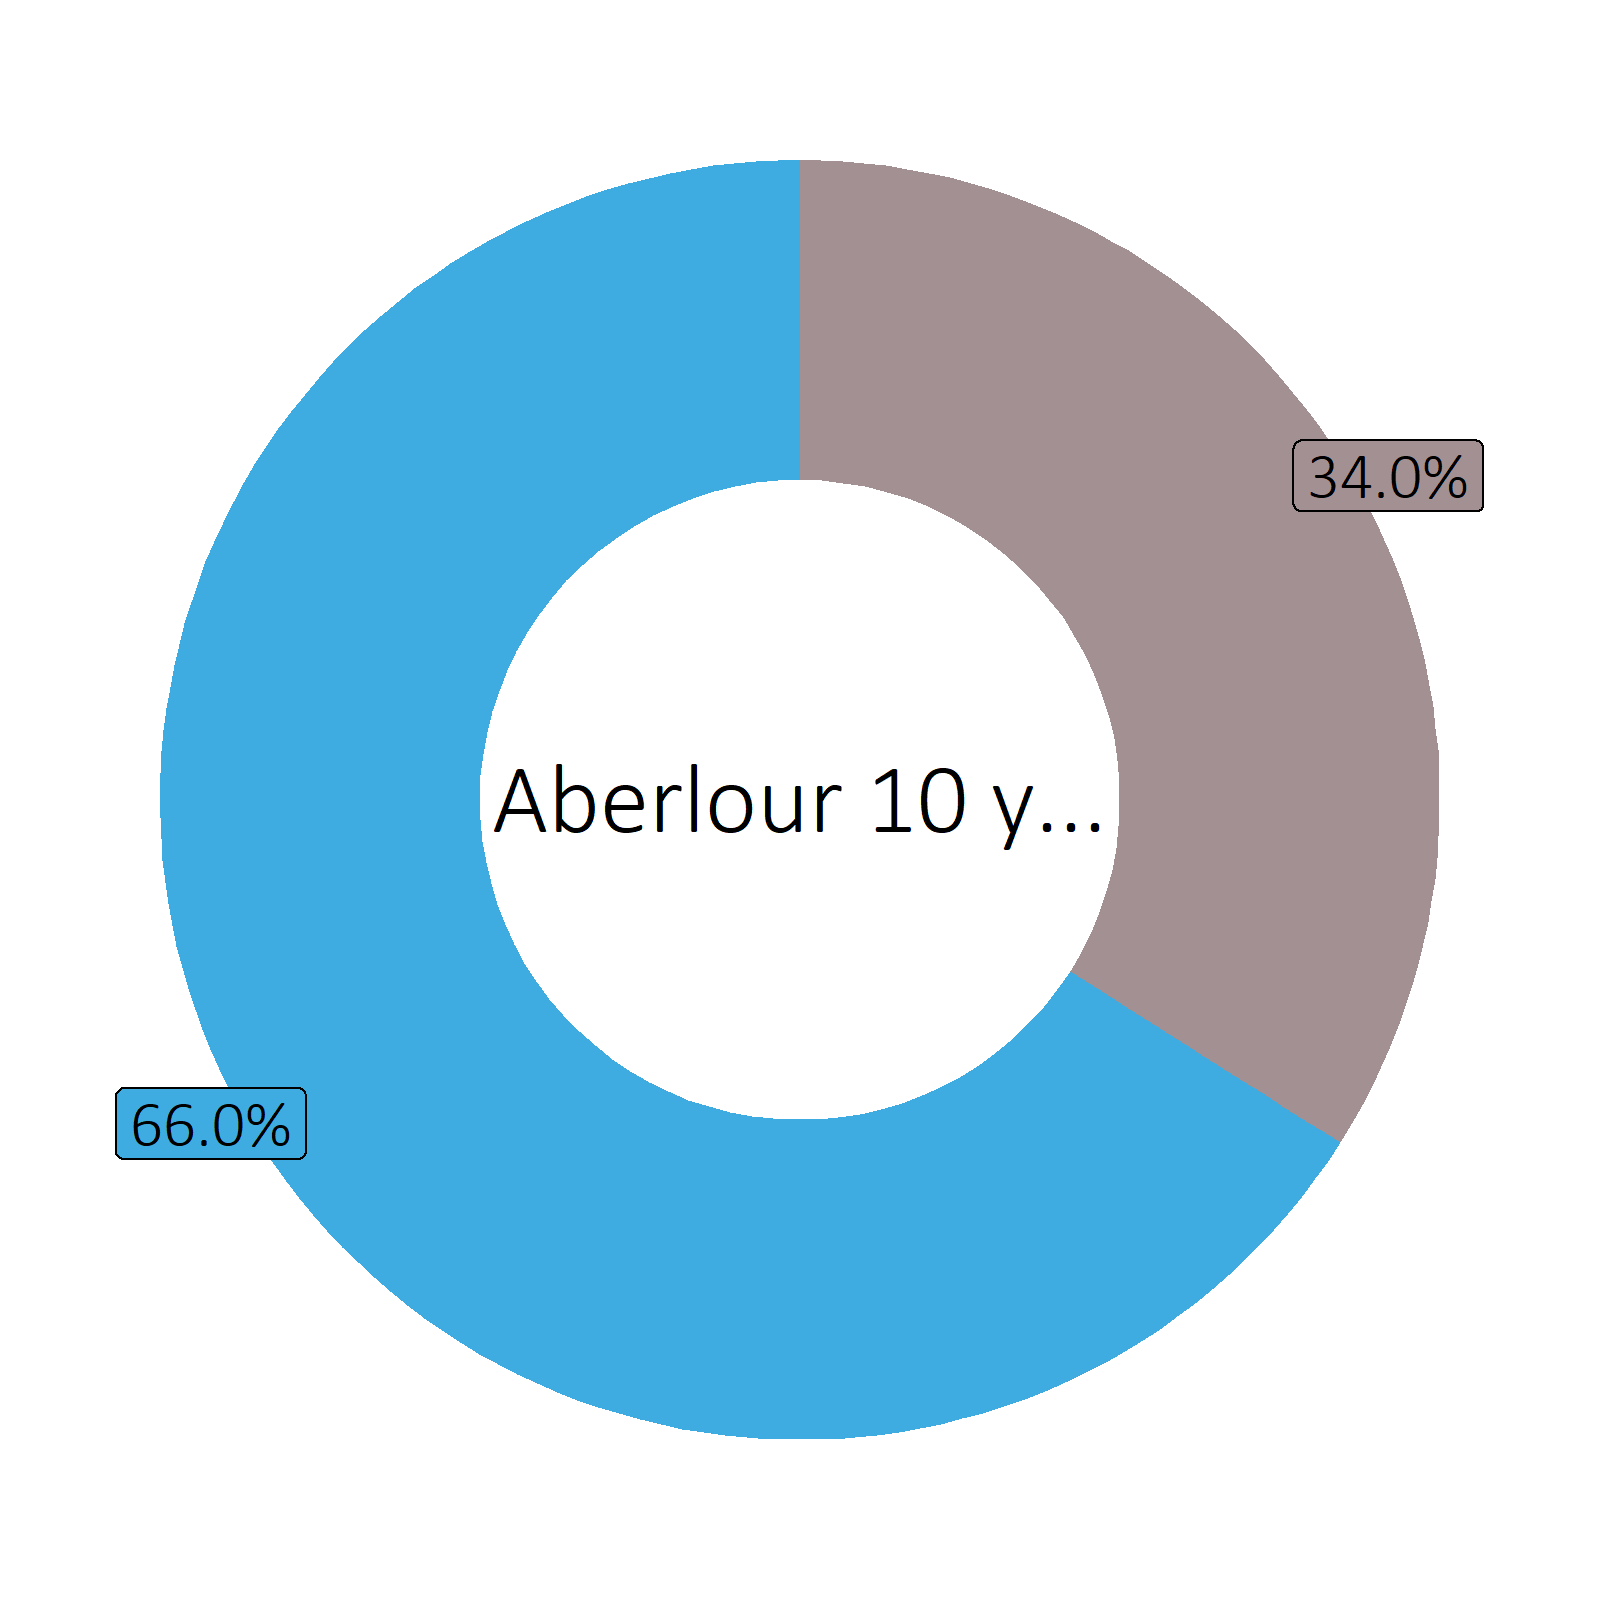 Bestandteile Aberlour 10 years old Malt Scotch Whisky (43 vol%)